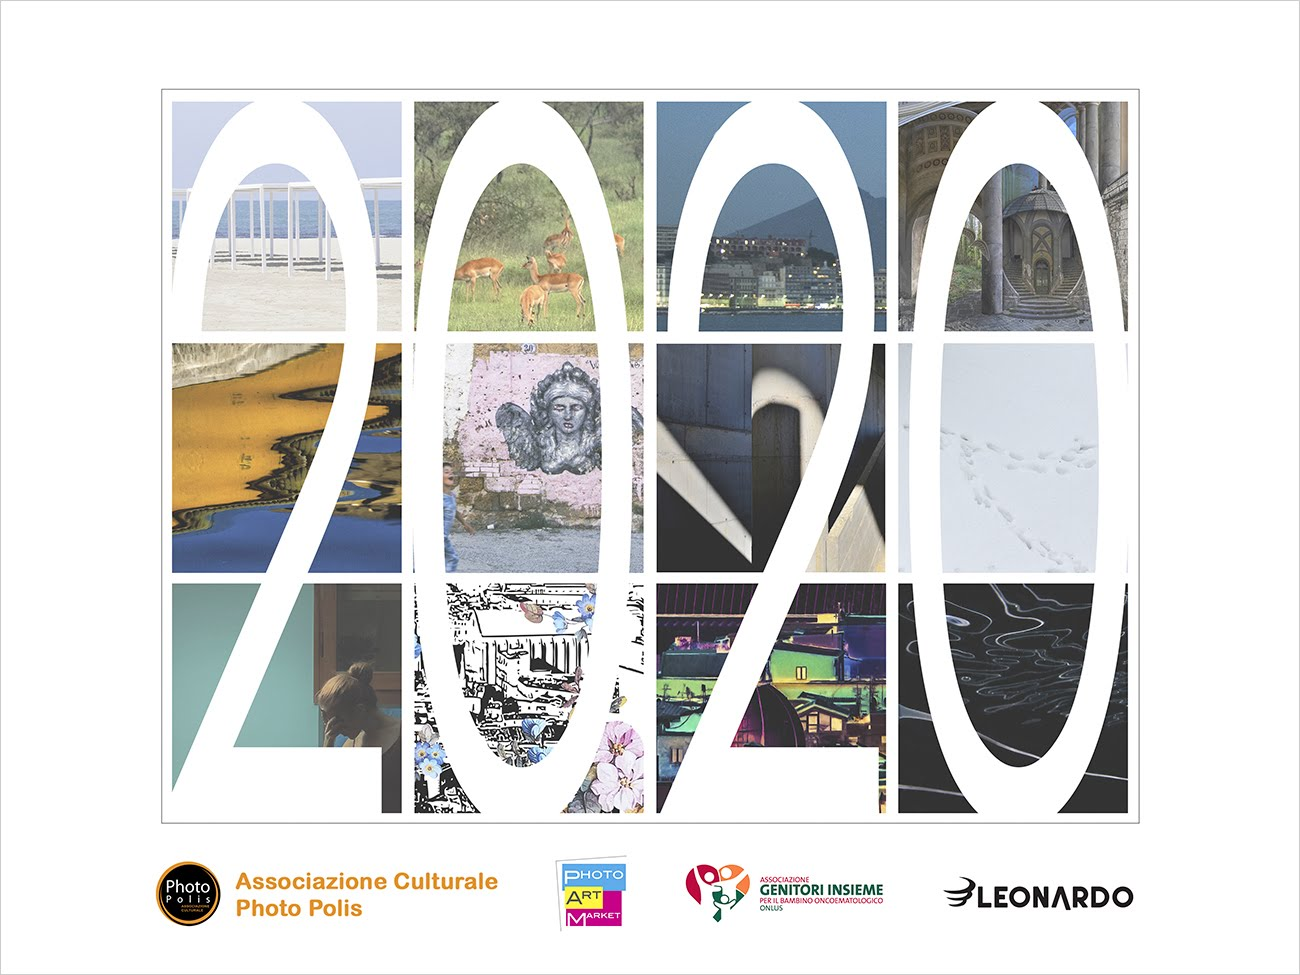 Calendario PAM - Photo Art Market 2020 Genitori Insieme Phorto Polis